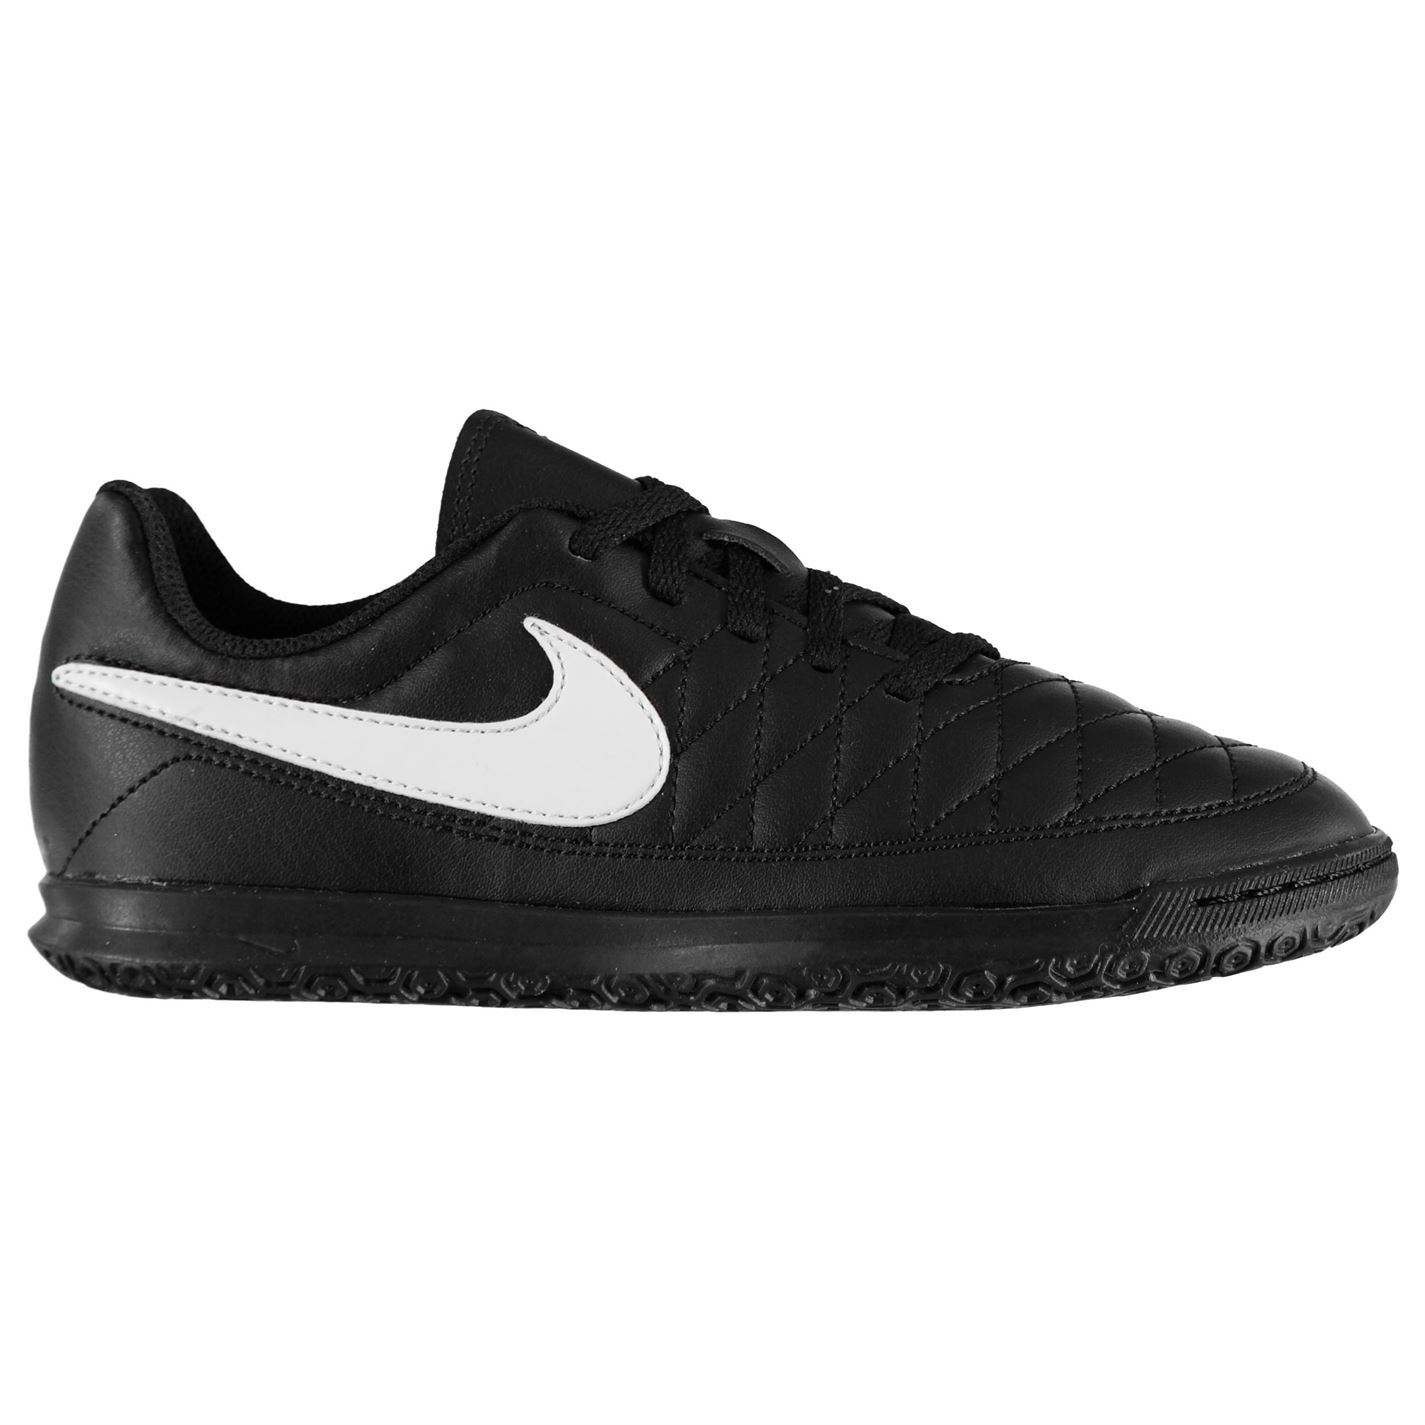 Nike-majestry-Indoor-Court-Football-formateurs-juniors-Football-Baskets-Chaussures miniature 9